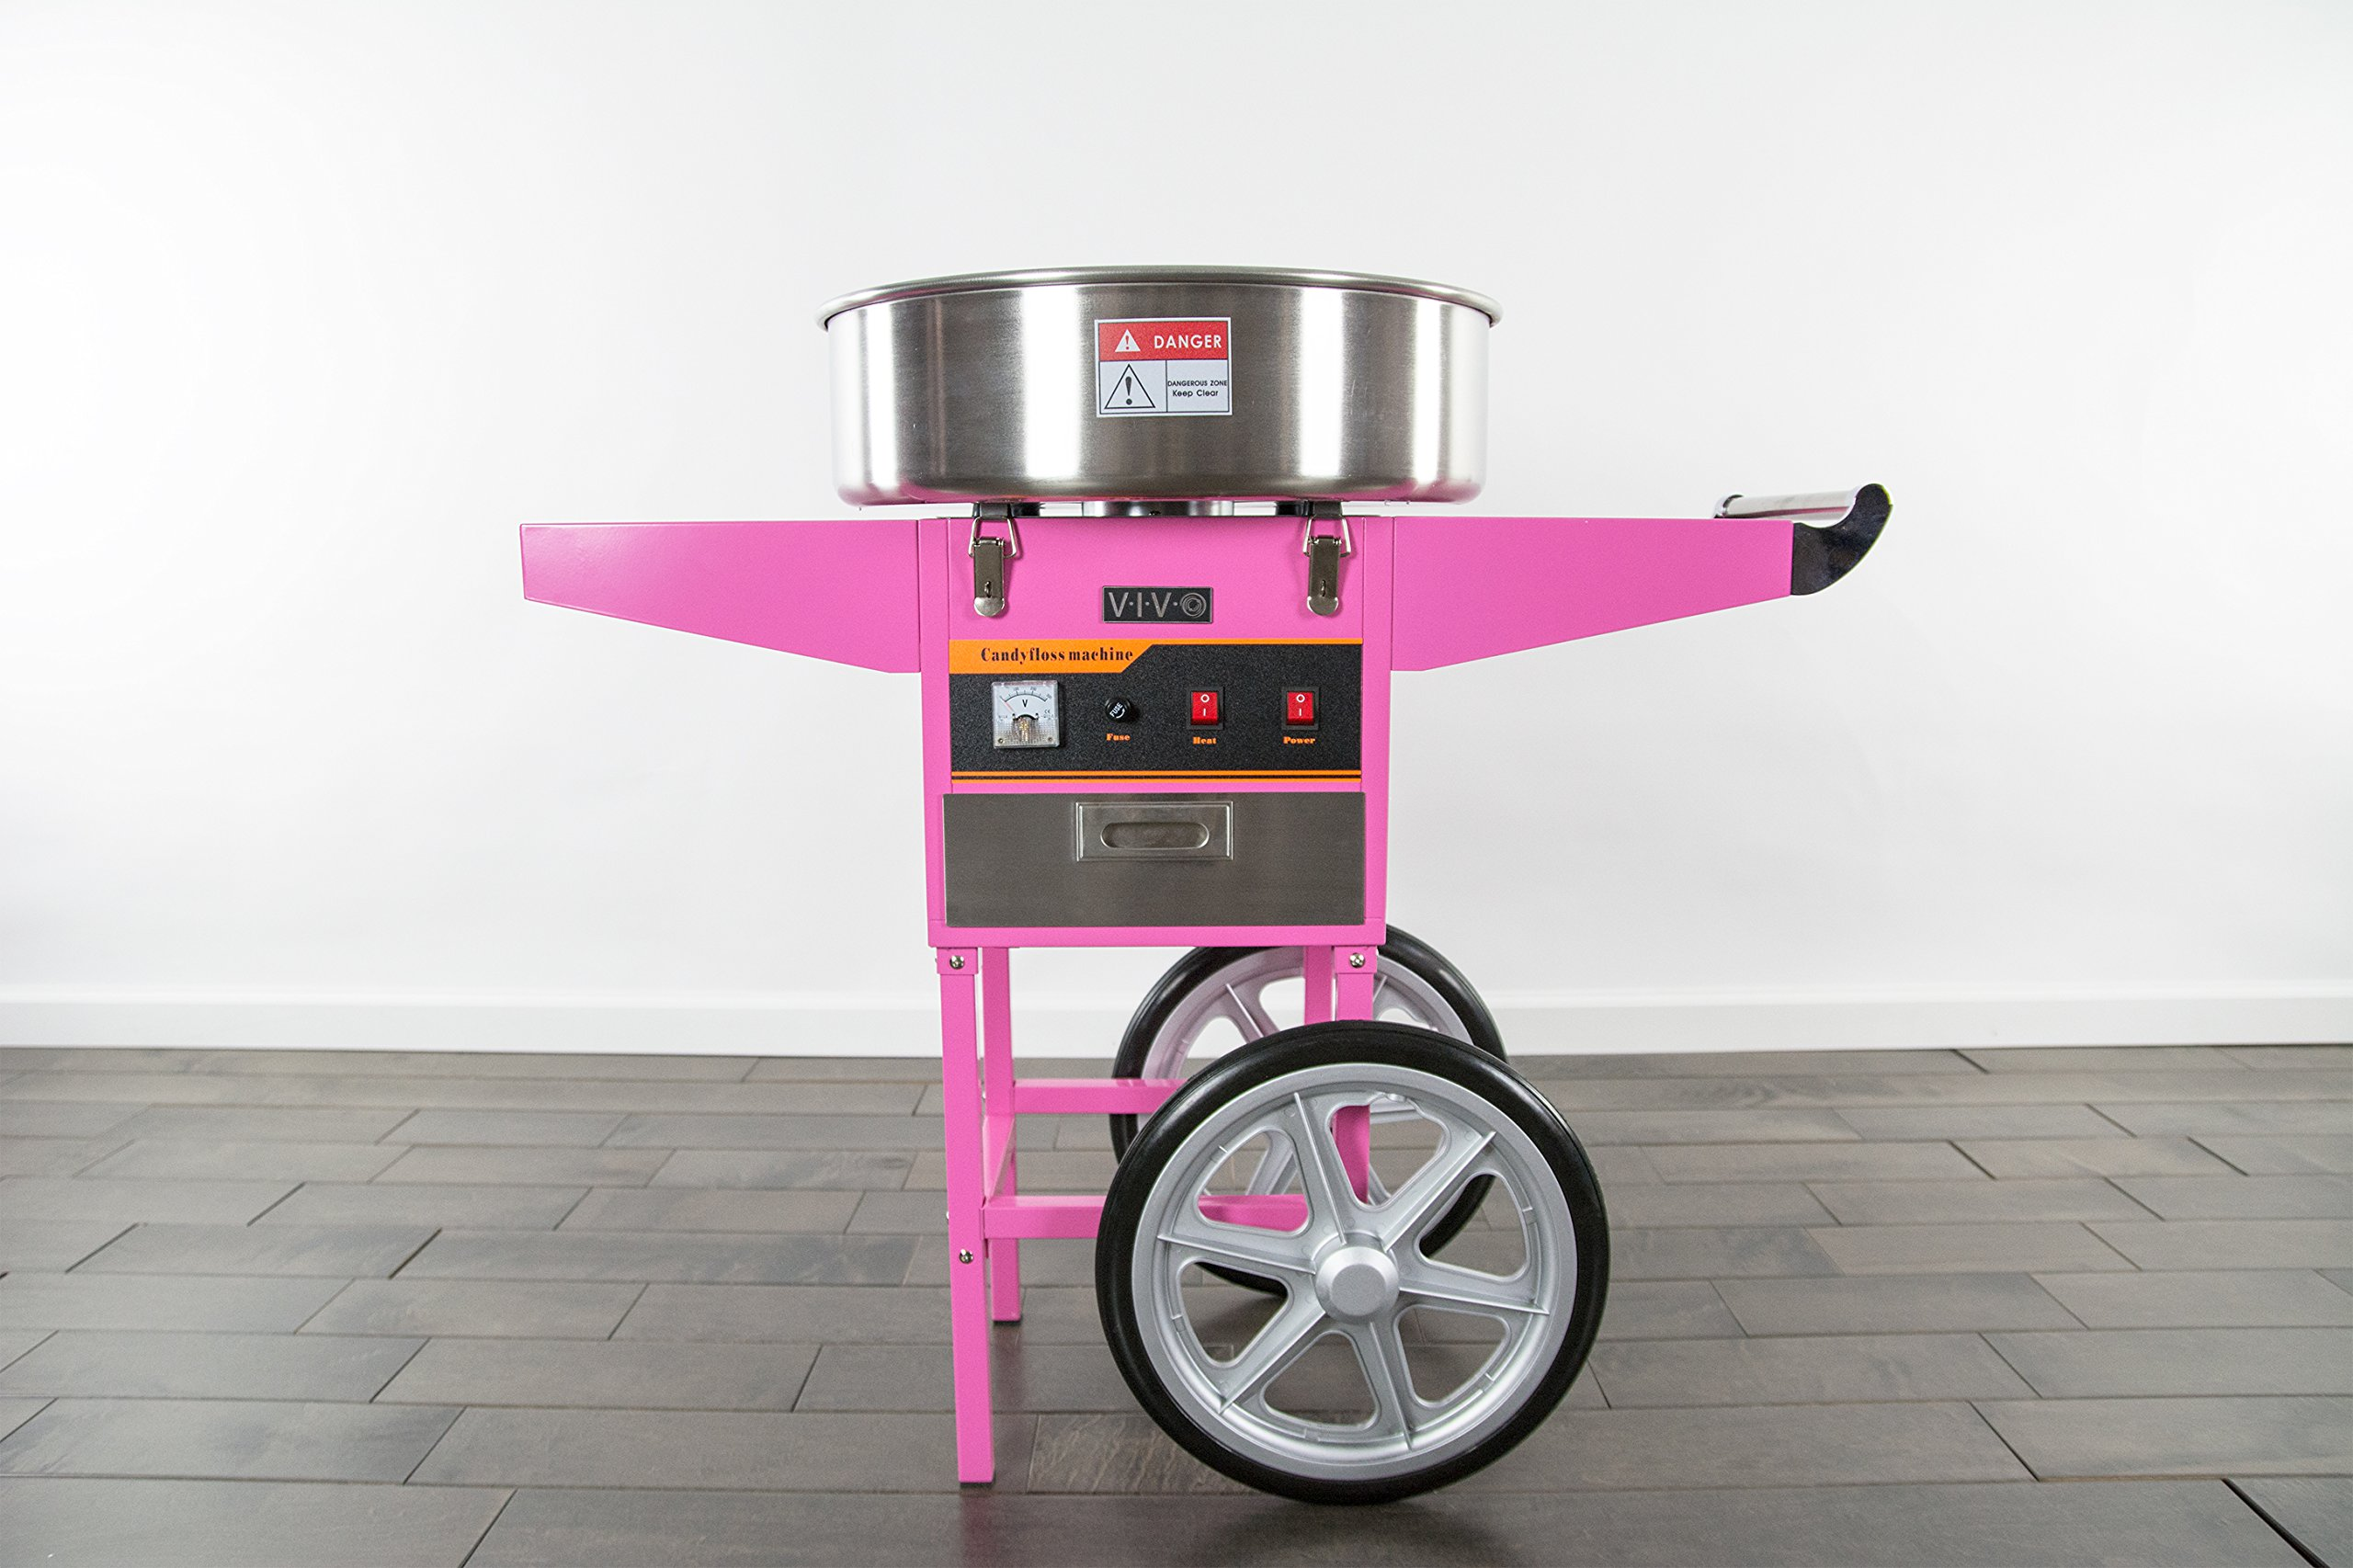 Electric Commercial Cotton Candy Machine / Candy Floss Maker Pink Cart Stand VIVO (CANDY-V002) by VIVO (Image #6)